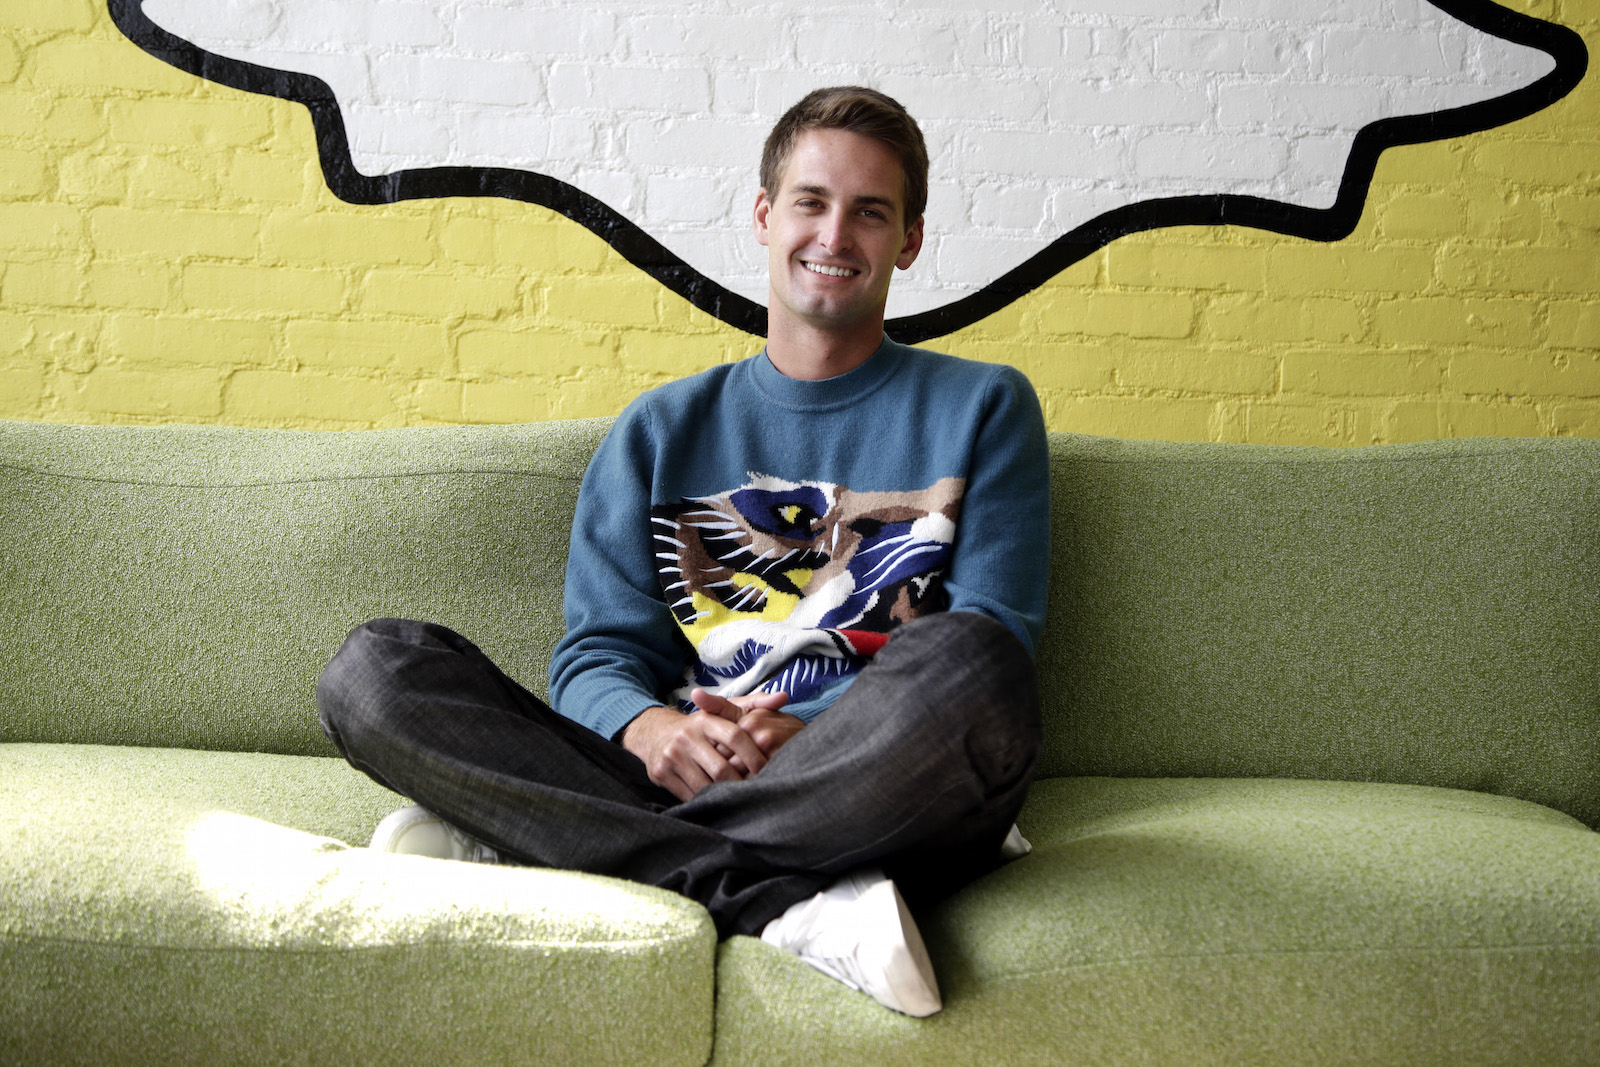 In this Thursday, Oct. 24, 2013, Snapchat CEO Evan Spiegel poses for photos, in Los Angeles. Spiegel dropped out of Stanford University in 2012, three classes shy of graduation, to move back to his father's house and work on Snapchat. Spiegel's fast-growing mobile app lets users send photos, videos and messages that disappear a few seconds after they are received.